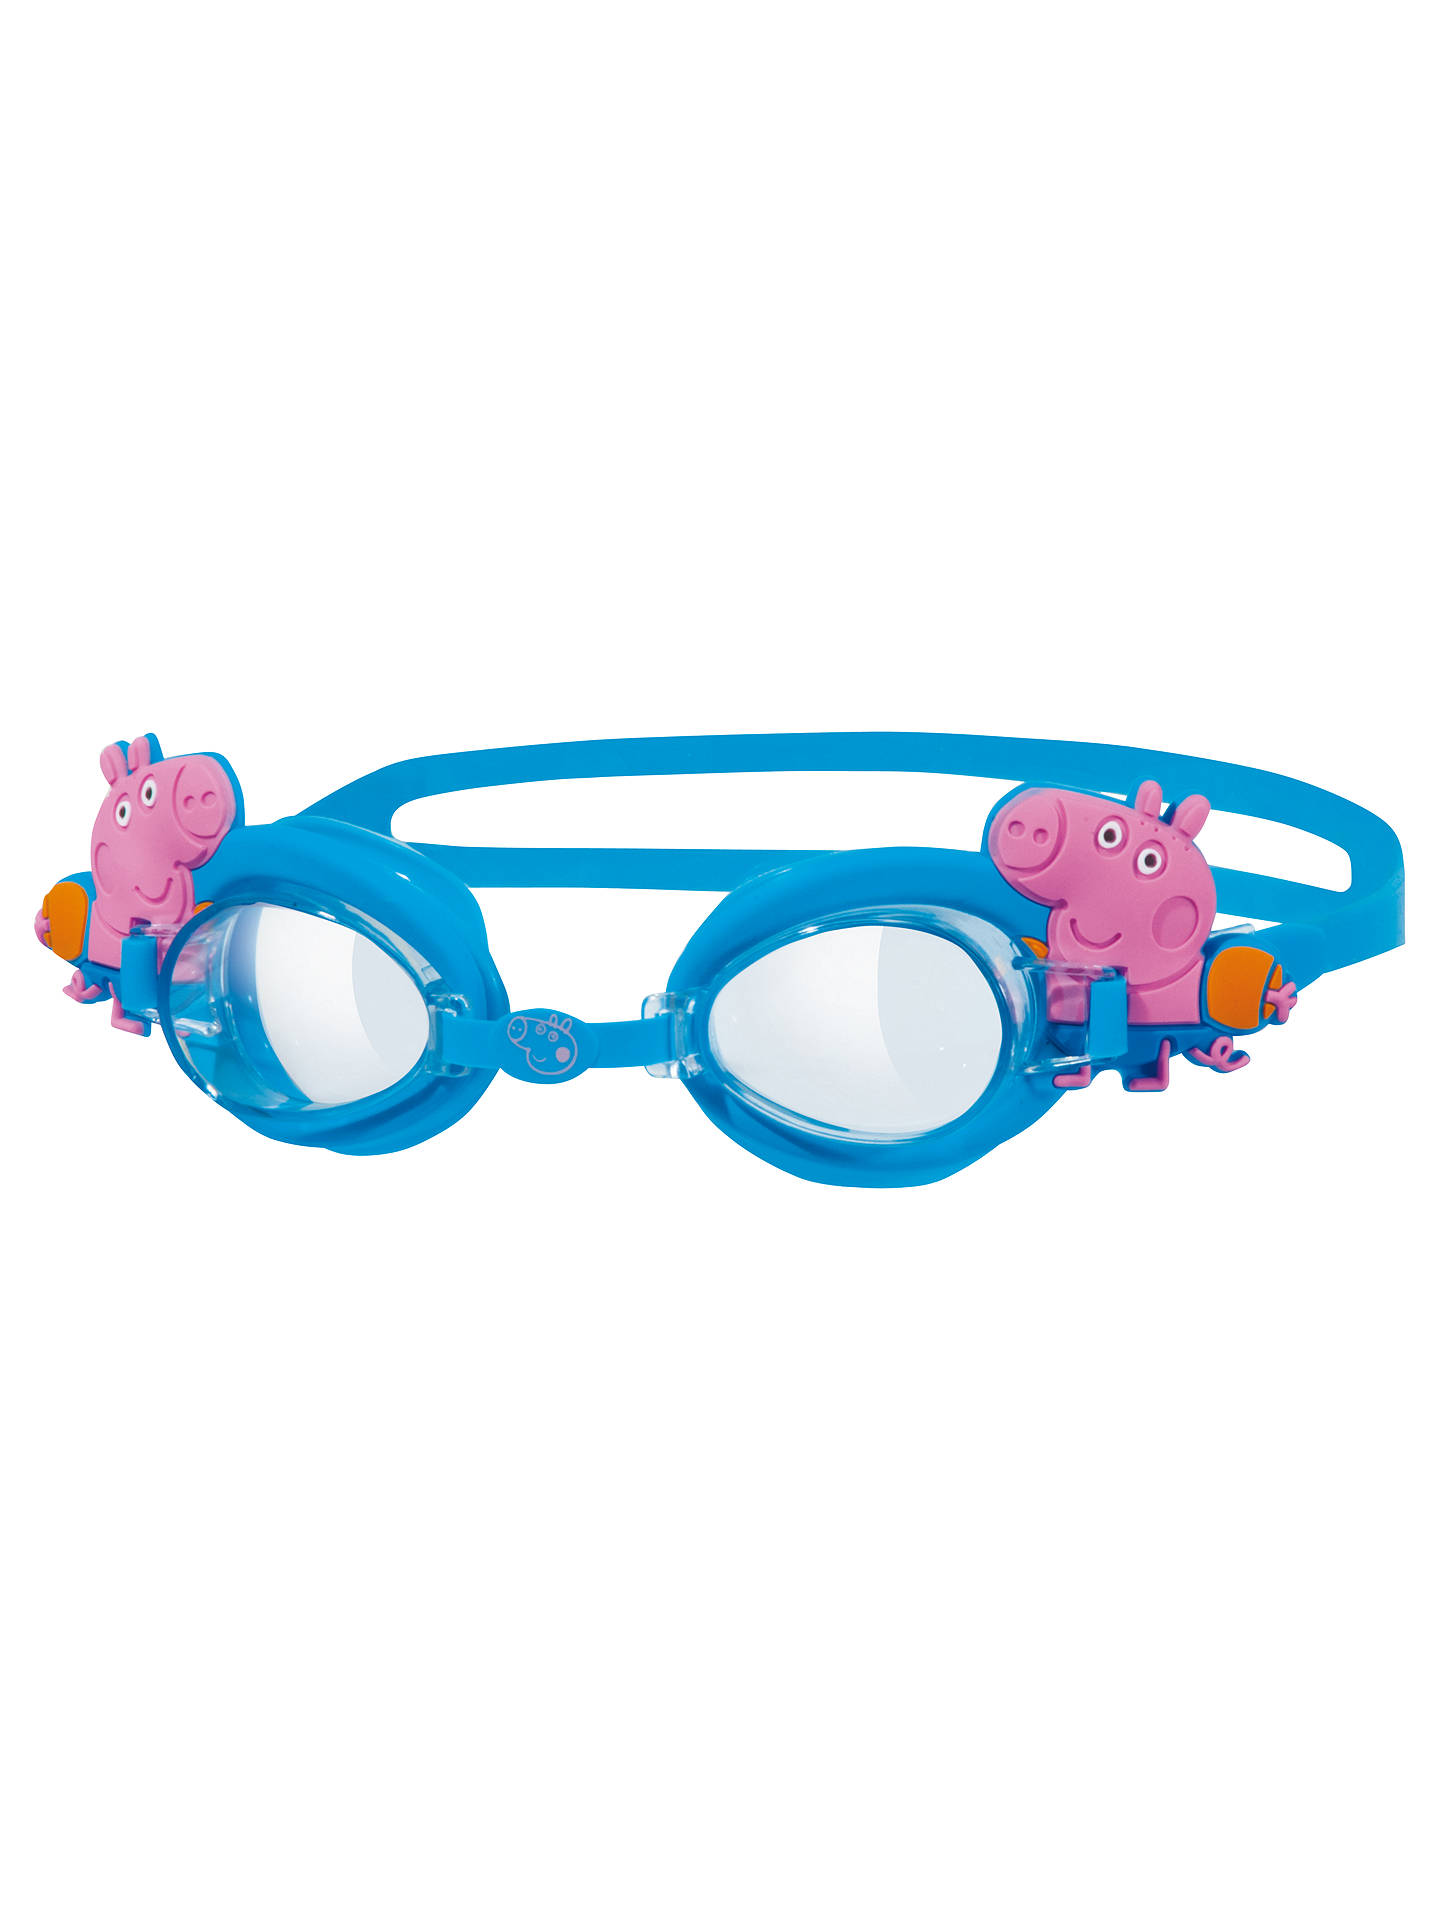 BuyZoggs George Pig Adjustable Goggles, Blue Online at johnlewis.com